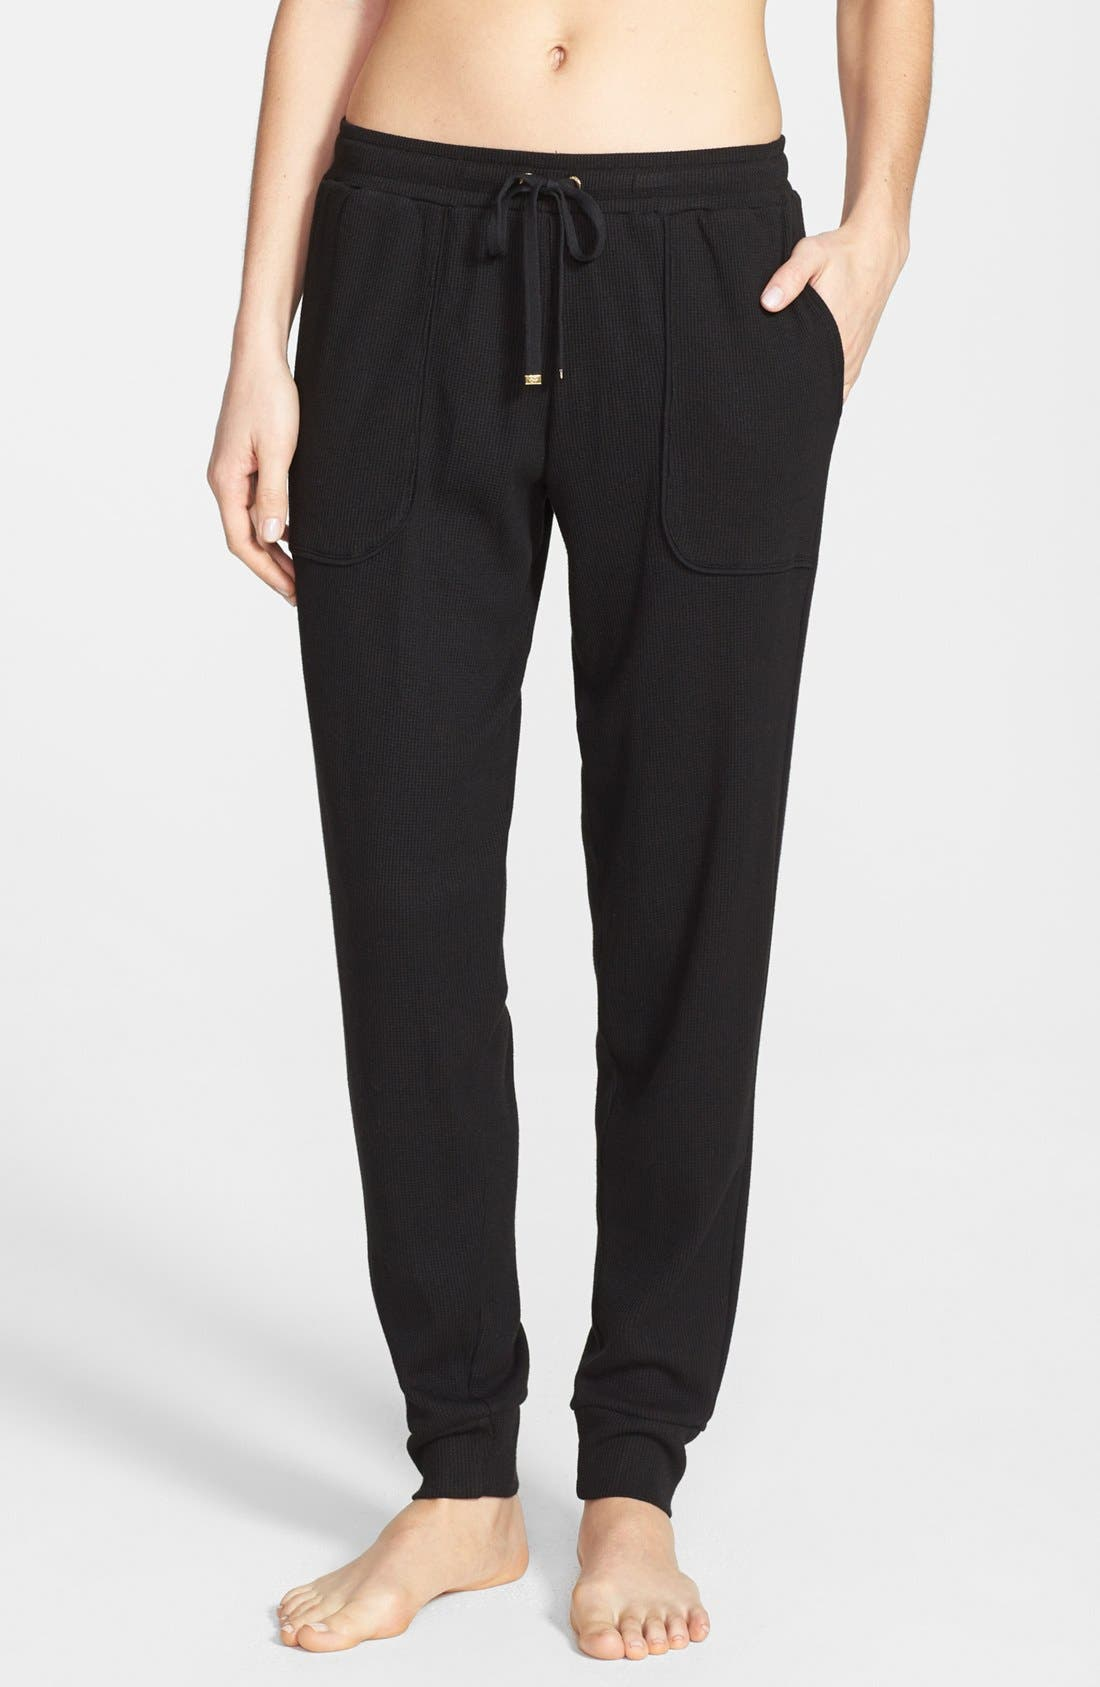 Alternate Image 1 Selected - DKNY 'Leisure Class' Sweatpants